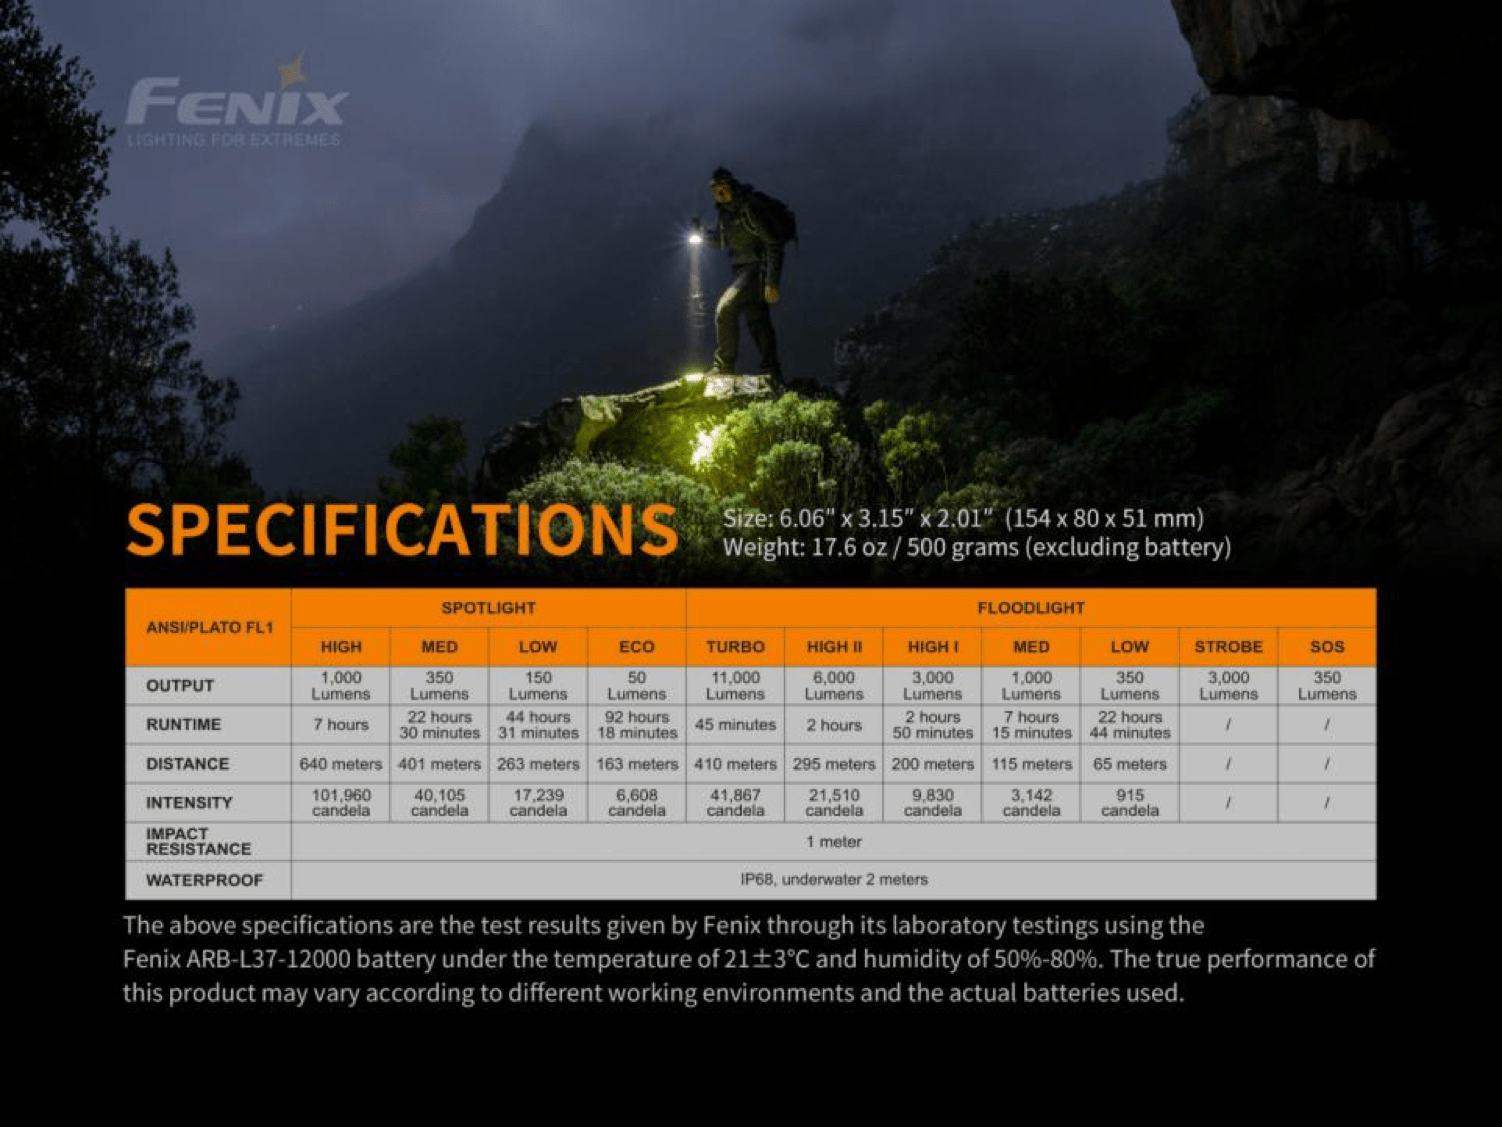 Fenix LR40R Rechargeable LED Searchlight in India, Extremely powerful torch with 12000 Lumens, Rechargeable Flashlight, Brightest Torch for Work, Search and rescue, Policing, Law enforcement and outdoors